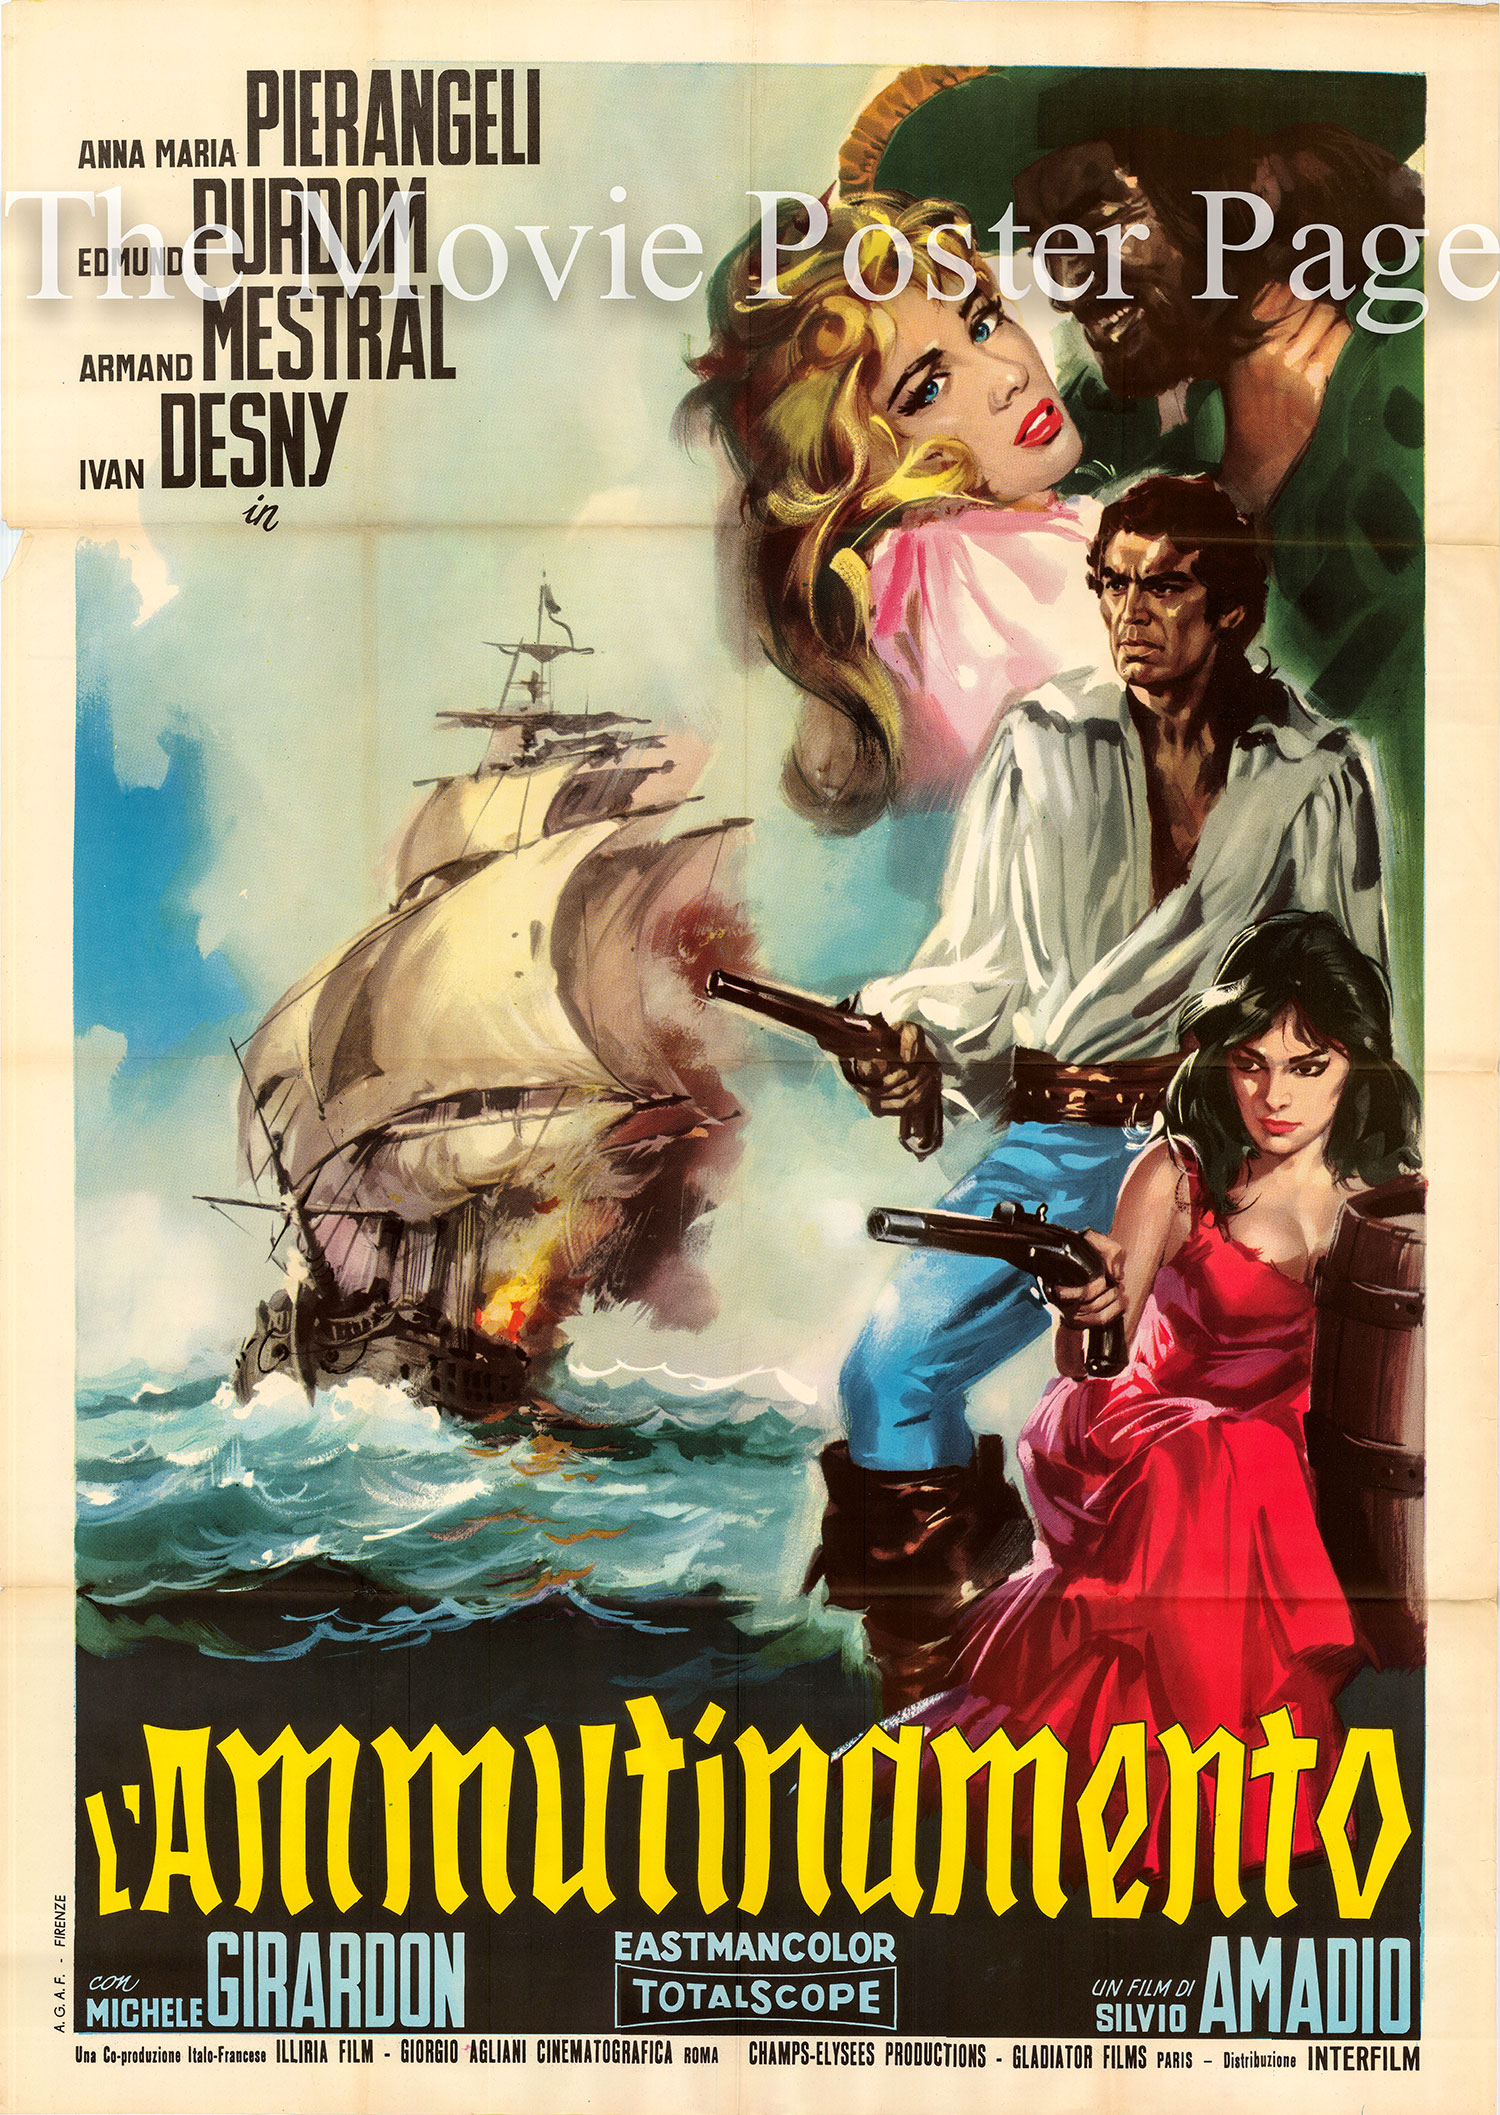 Pictured is an Italian two-sheet poster made to promote the 1962 Silvio Amadio film <i>White Slave Ship</i> starring Pier Angeli as Polly.